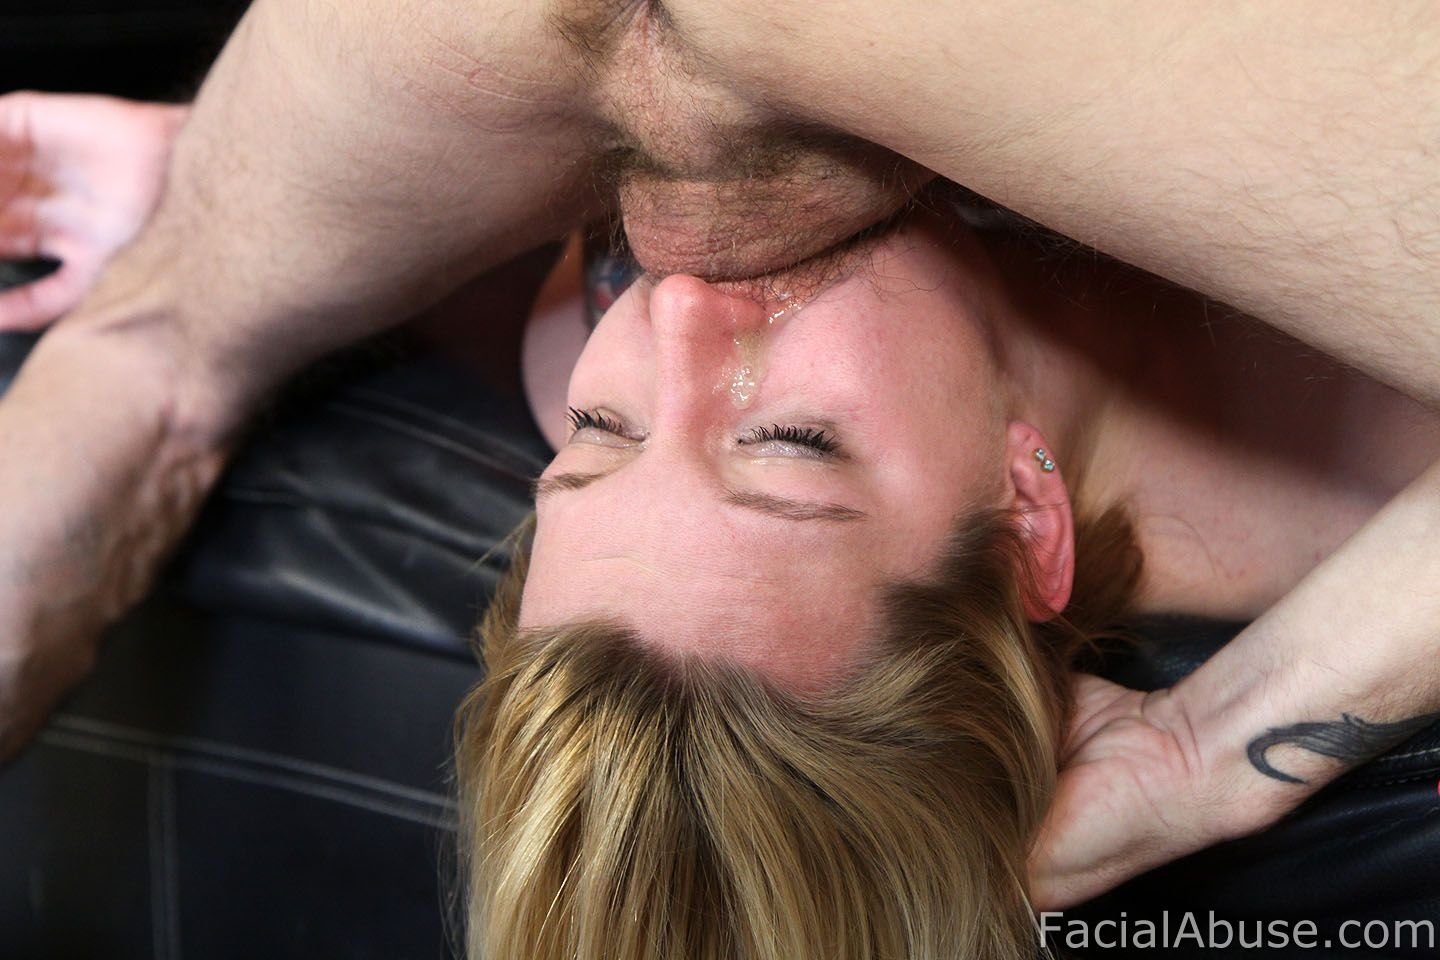 amde-porn-ultimate-throat-gagging-blow-job-tube-ball